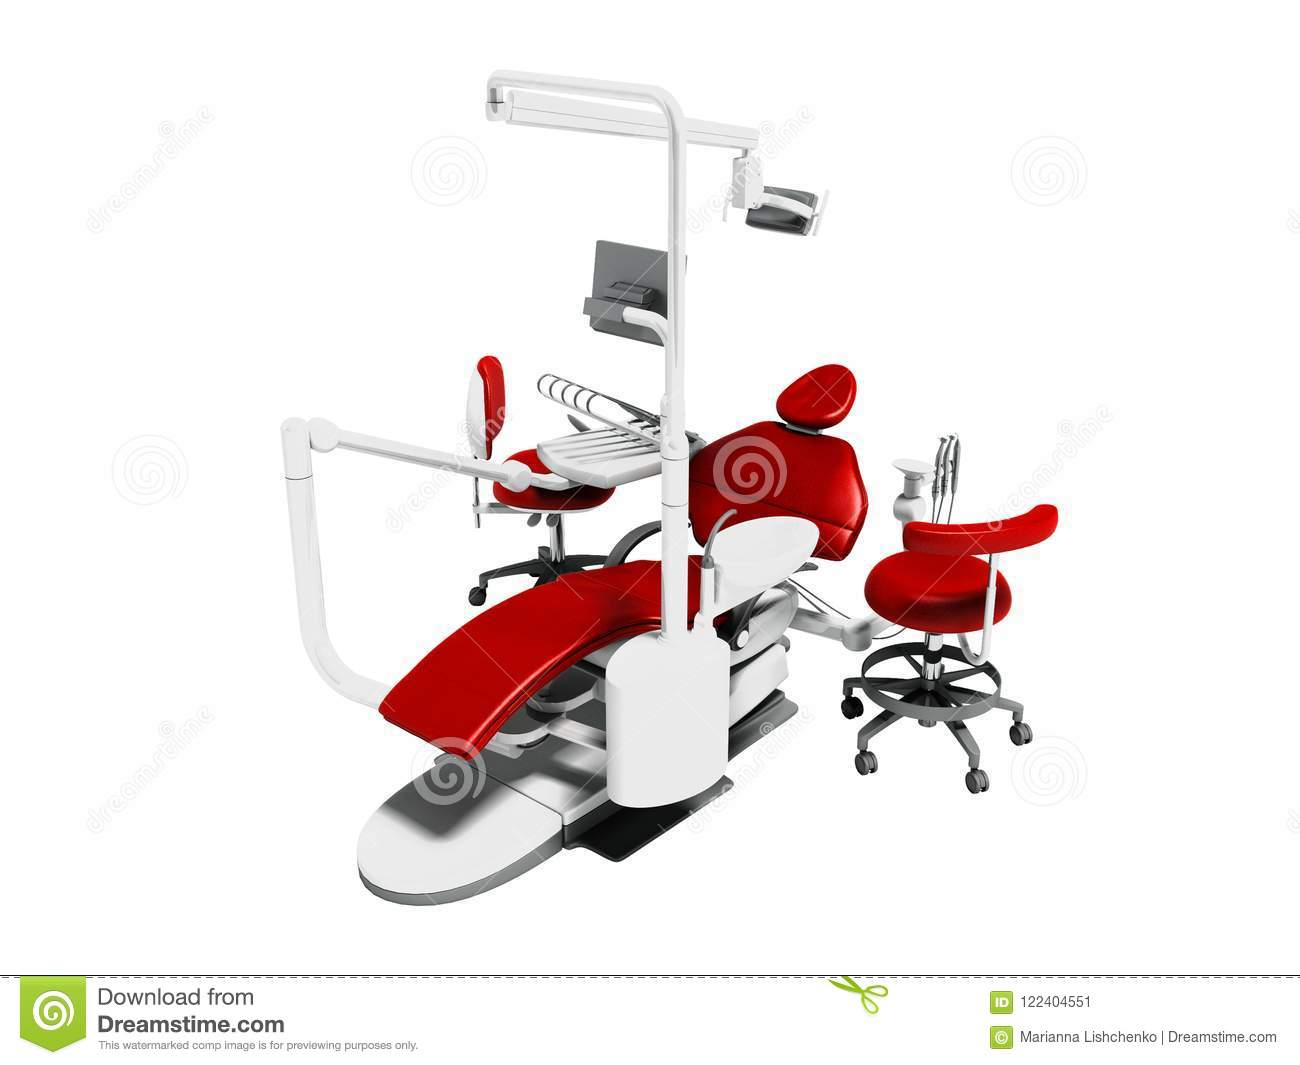 Surprising Modern Red Dental Chair With White Inserts With Monitor On Pdpeps Interior Chair Design Pdpepsorg